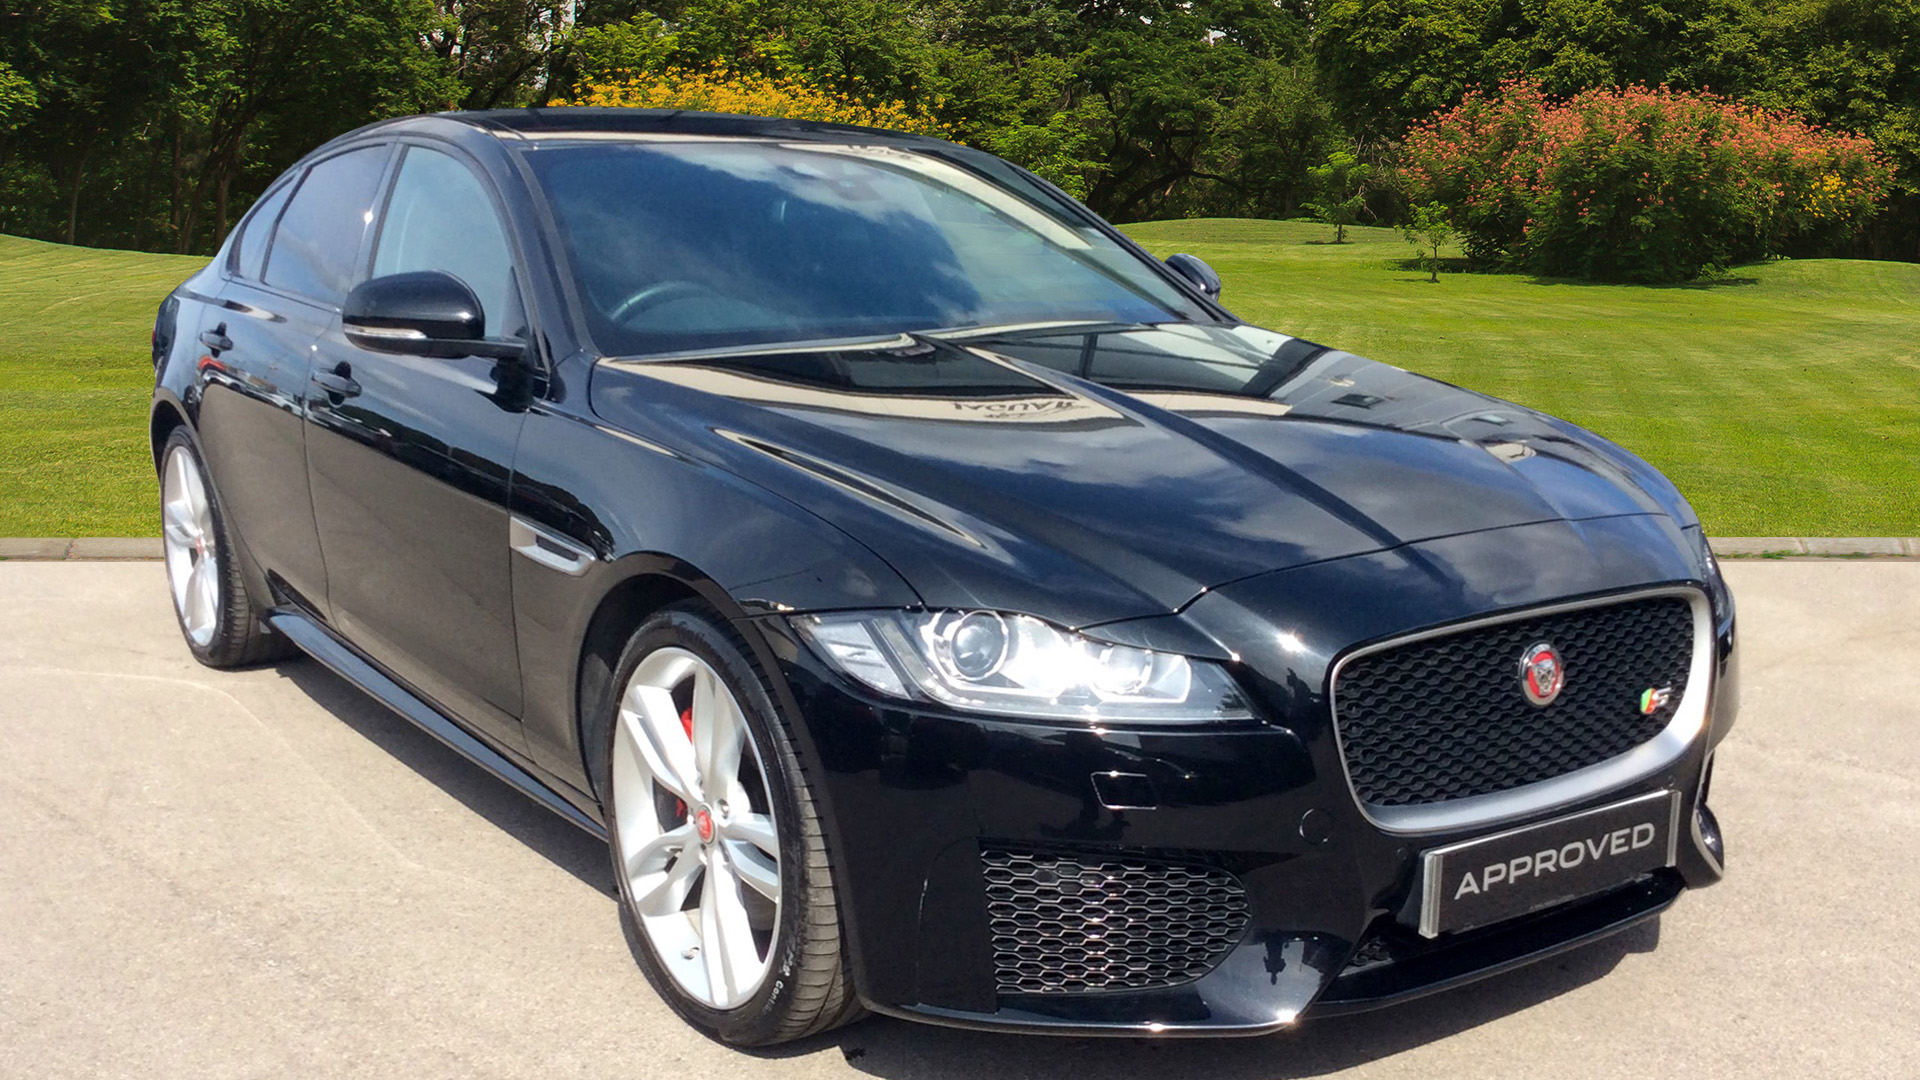 Used Jaguar XF 3 0D V6 S 4Dr Auto Diesel Saloon for Sale